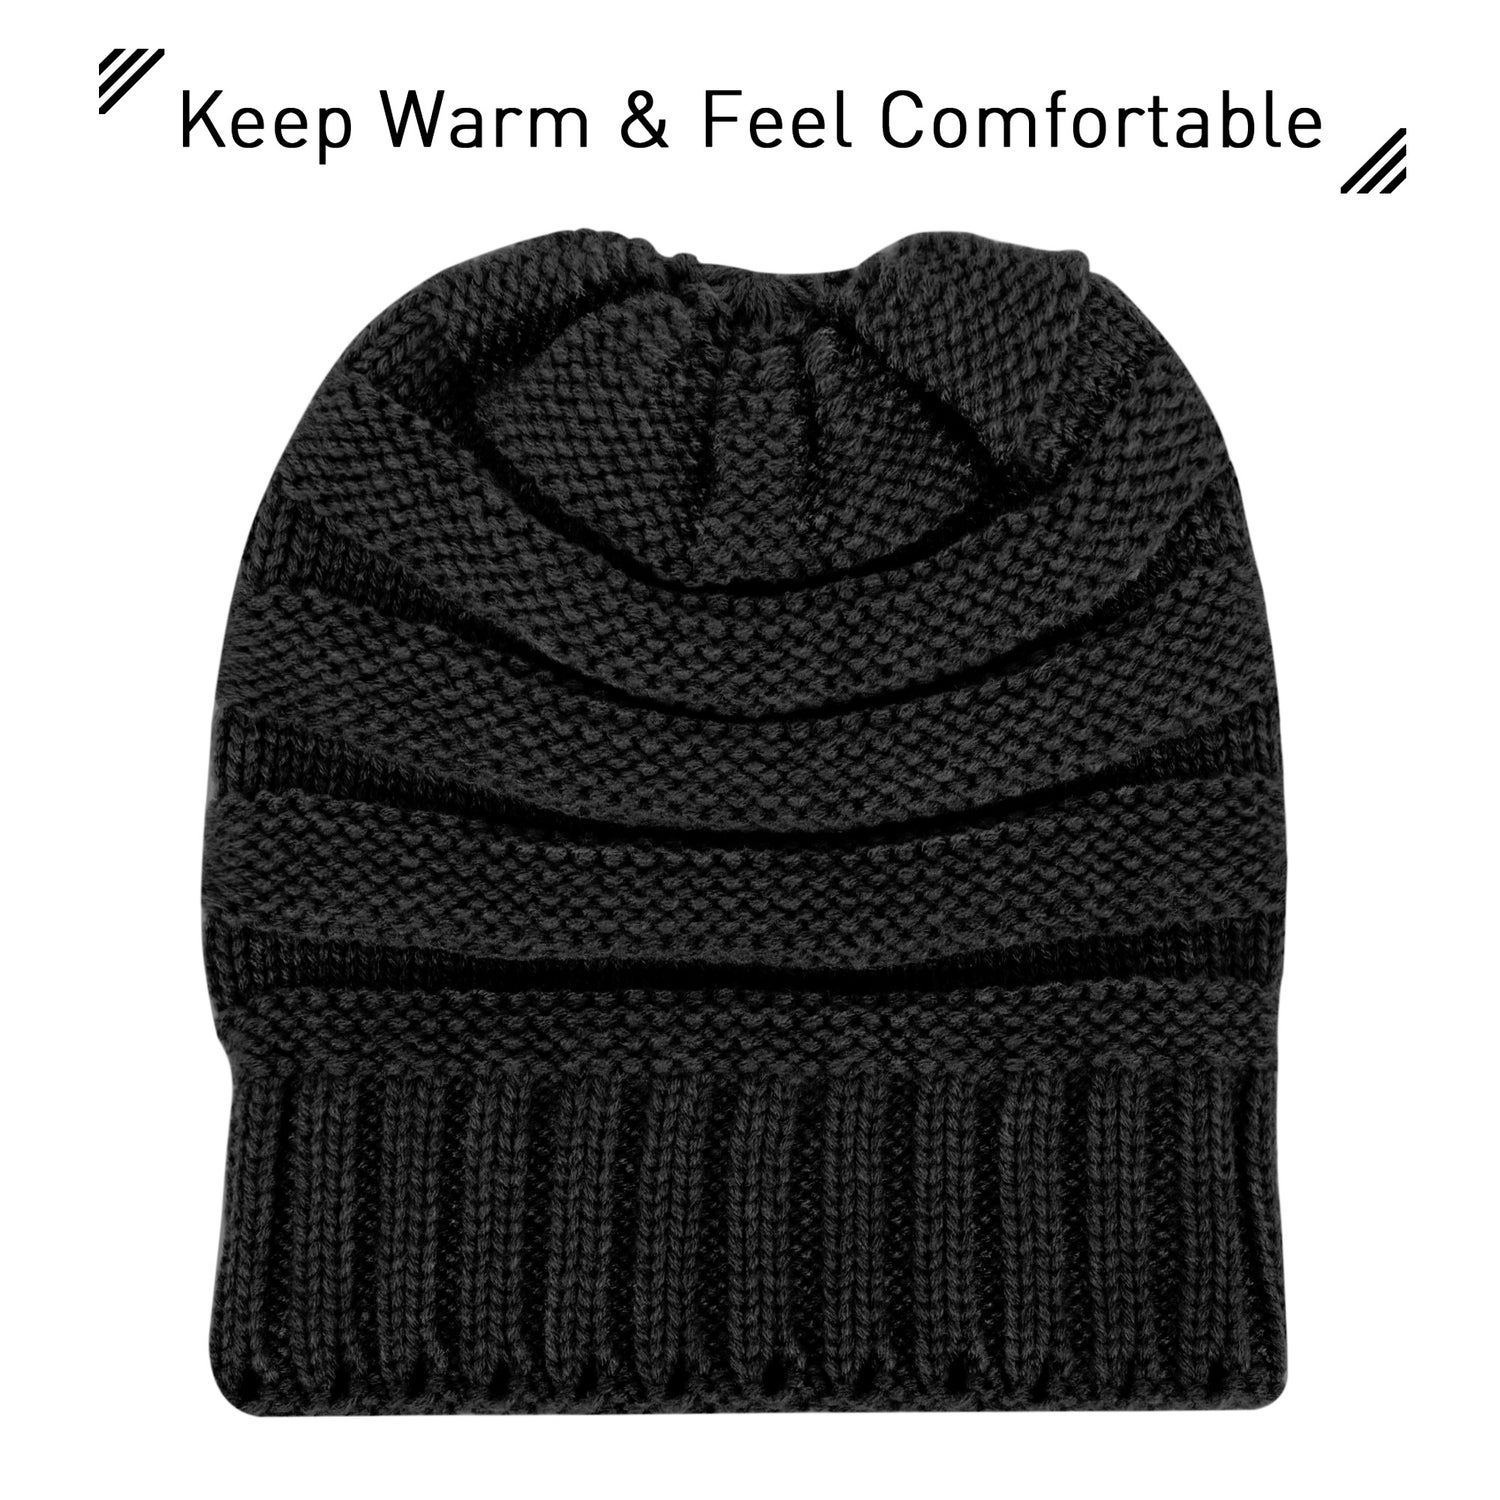 6b752f10bad Shop Zodaca Unisex Oversized Wavy Cable Knit Slouchy Beanie Knit Hat Skull  Cap for Men and Women - On Sale - Ships To Canada - Overstock.ca - 18823241